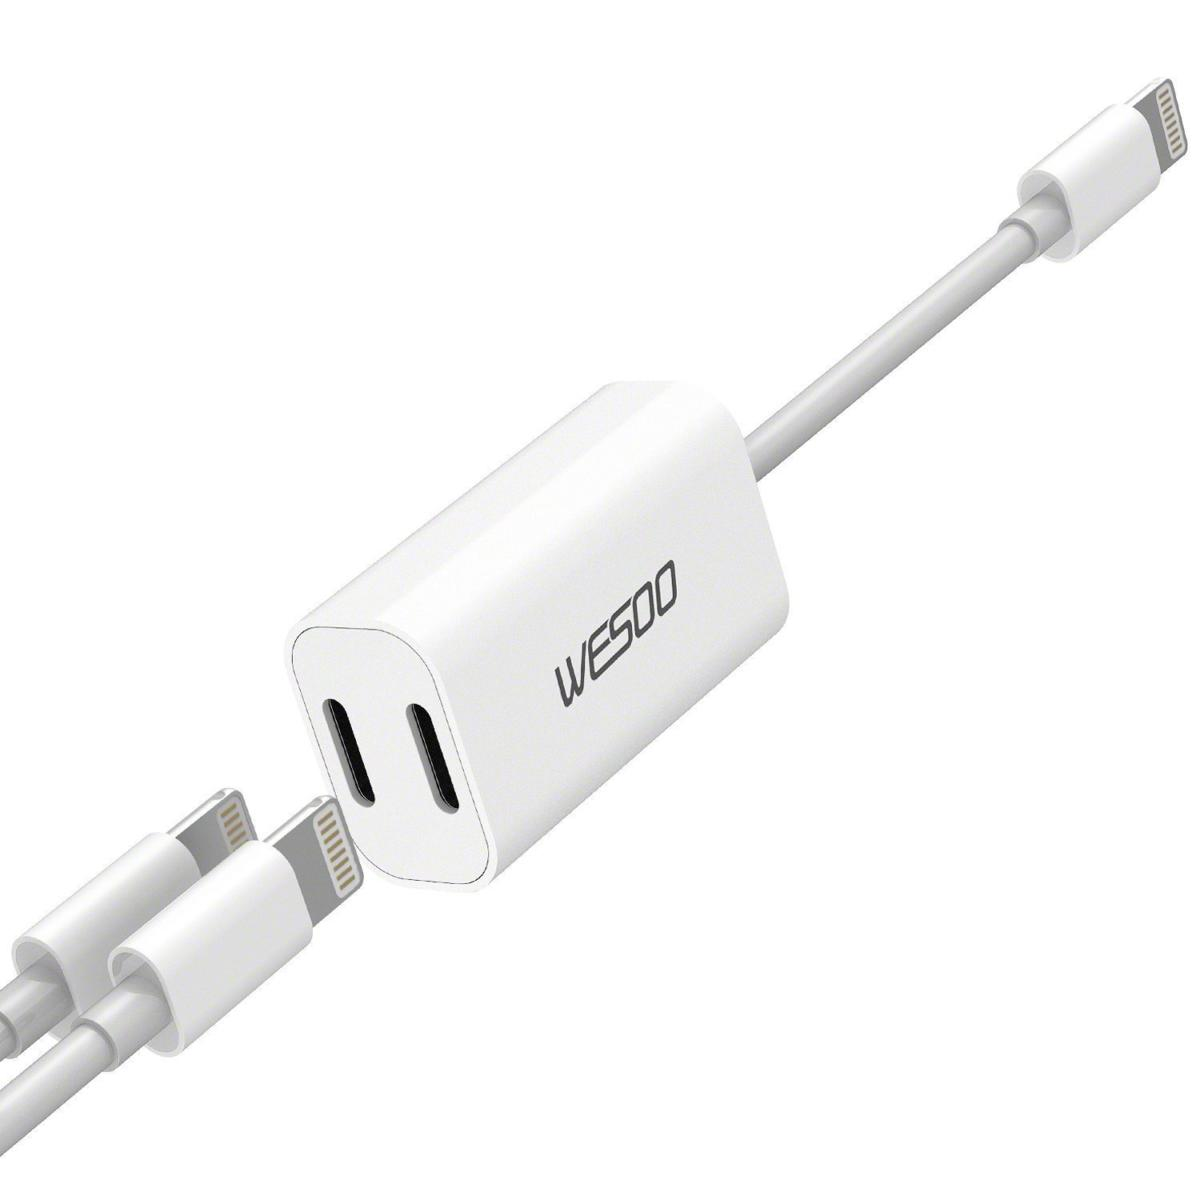 wesoo dual lightning adapter iphone 7 headphone jack